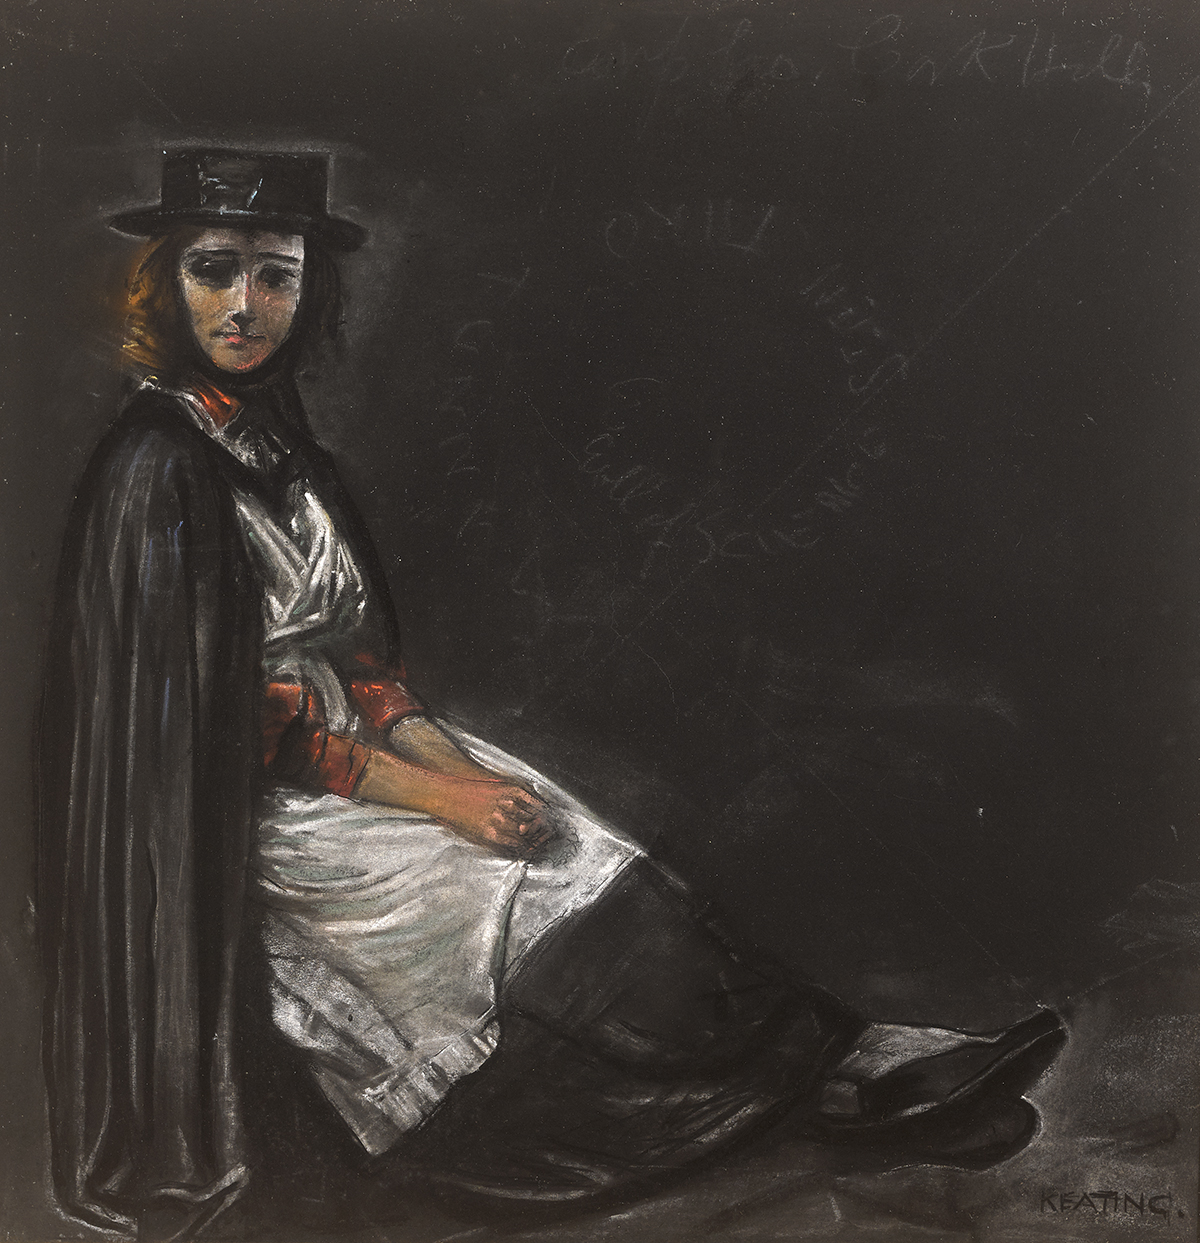 Lot 40 - Seán Keating PPRHA HRA HRSA (1889-1977)THE TALLYMAN'S WIFE pastel signed lower right 20.50 by